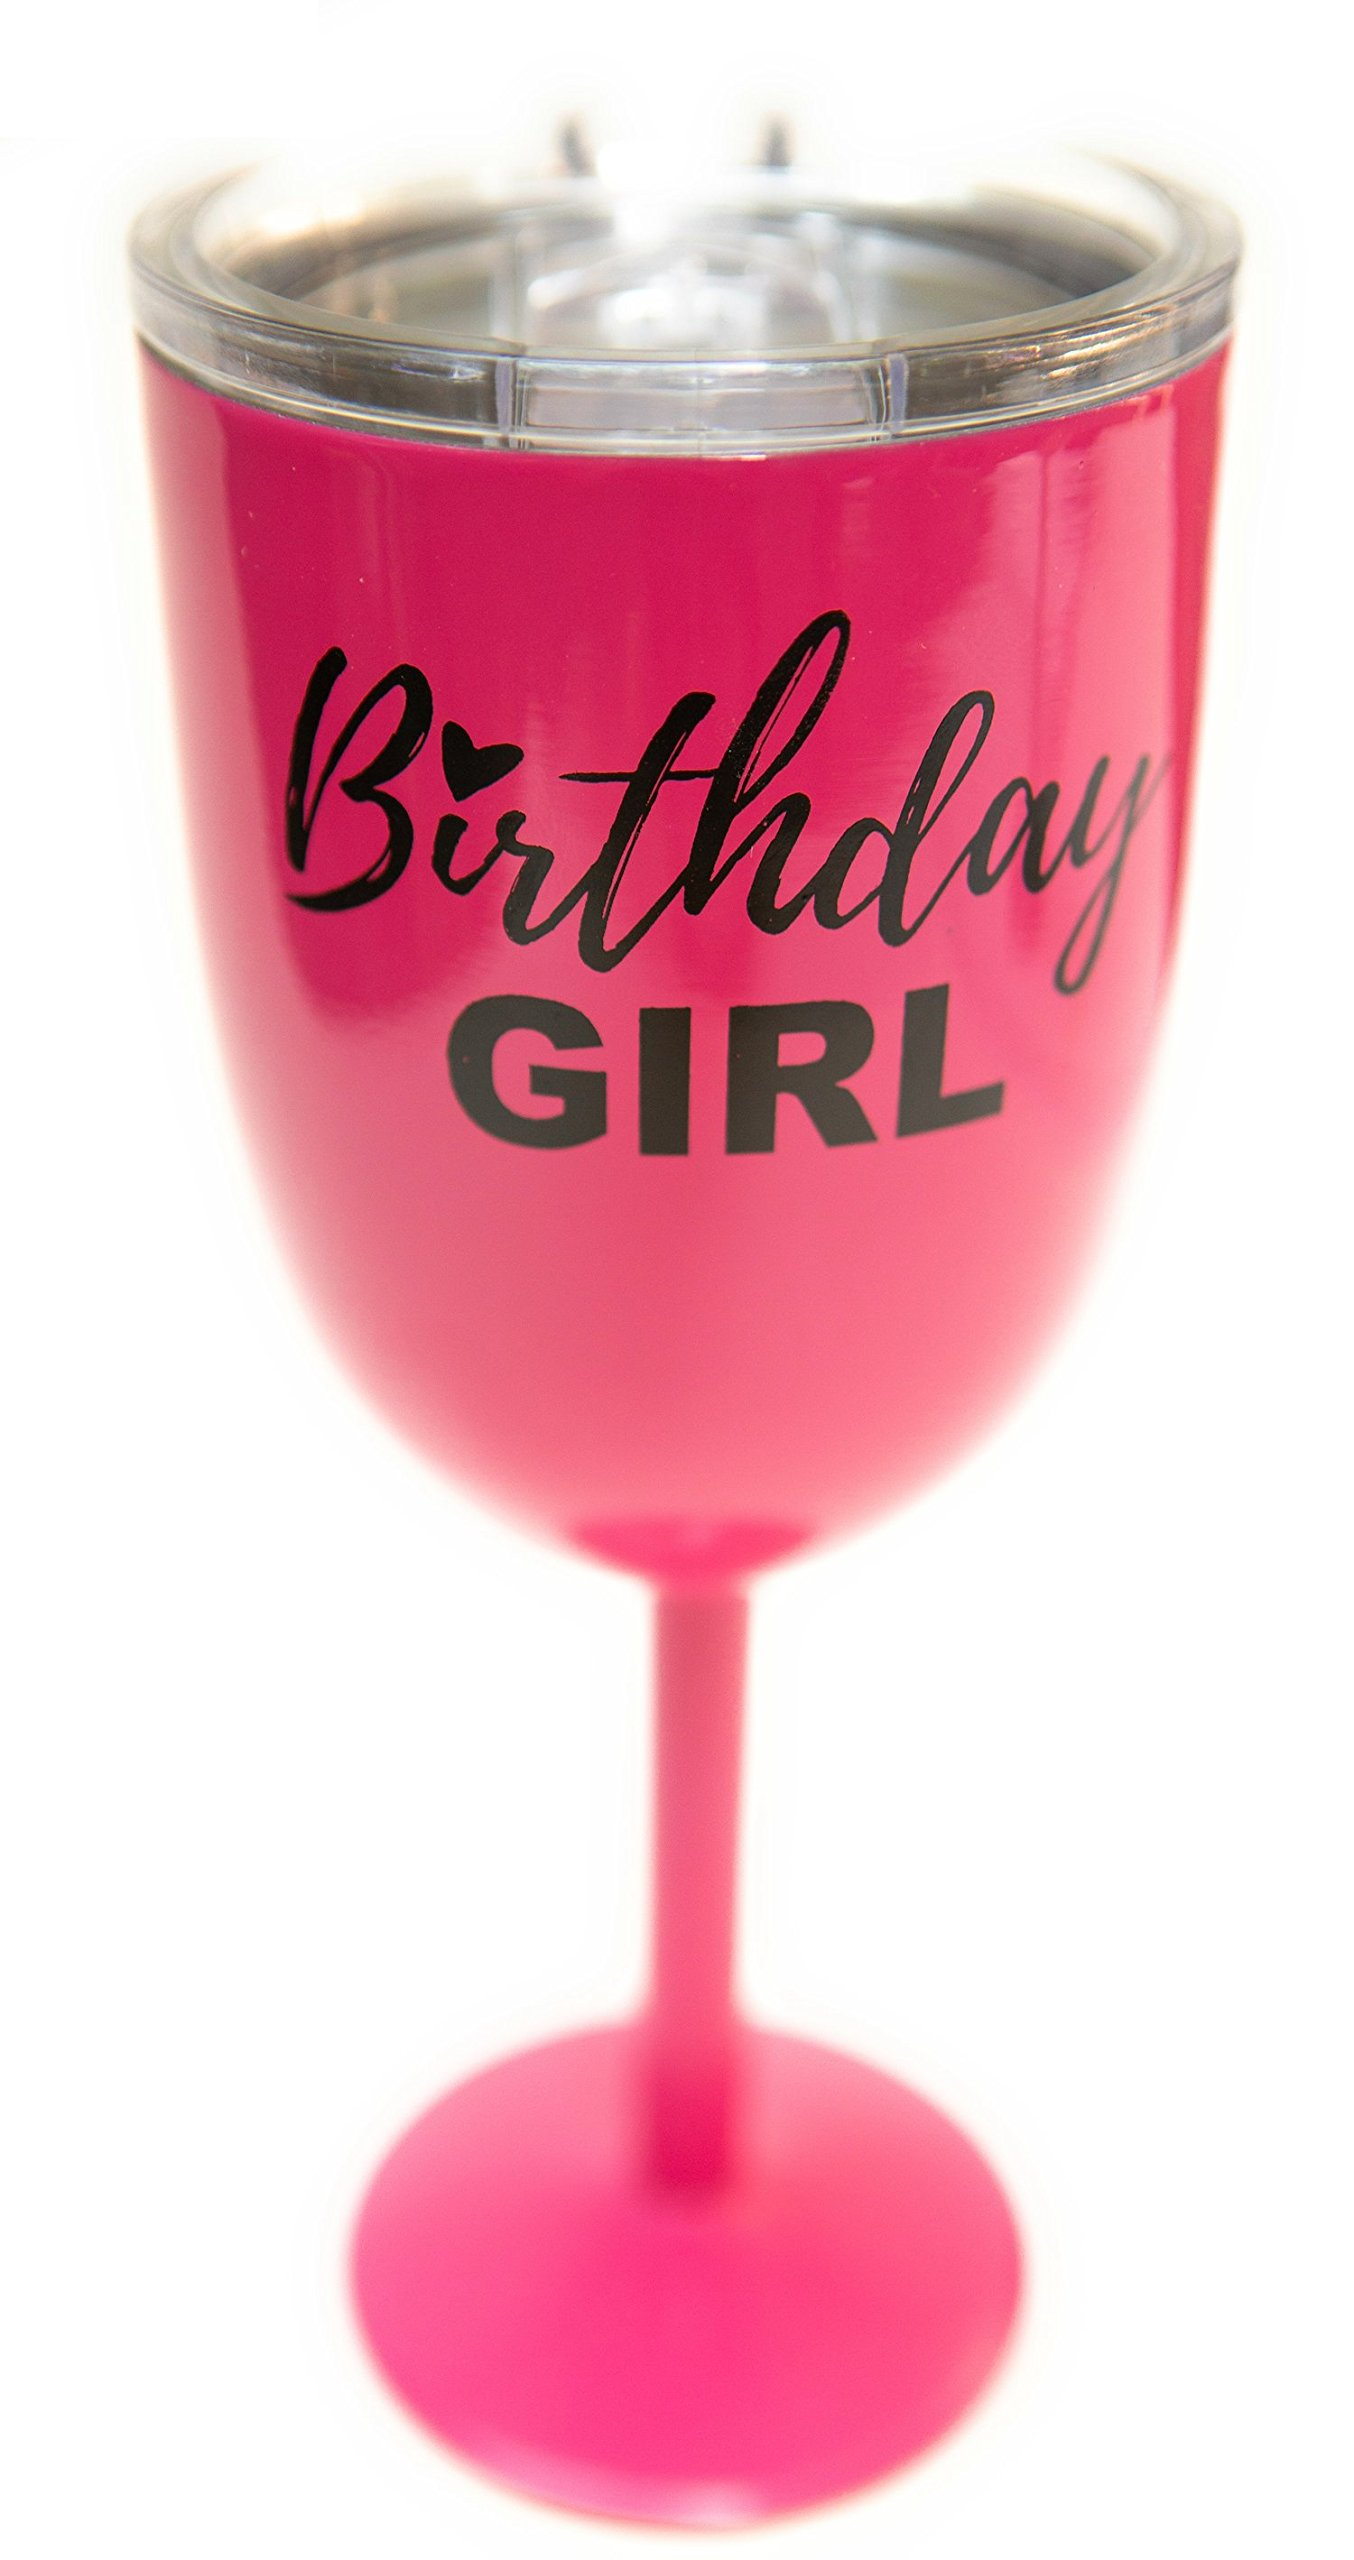 Birthday Girl Metal Wine Cup - Wine Gifts for Women - Stainless Steel Goblet (Pink)